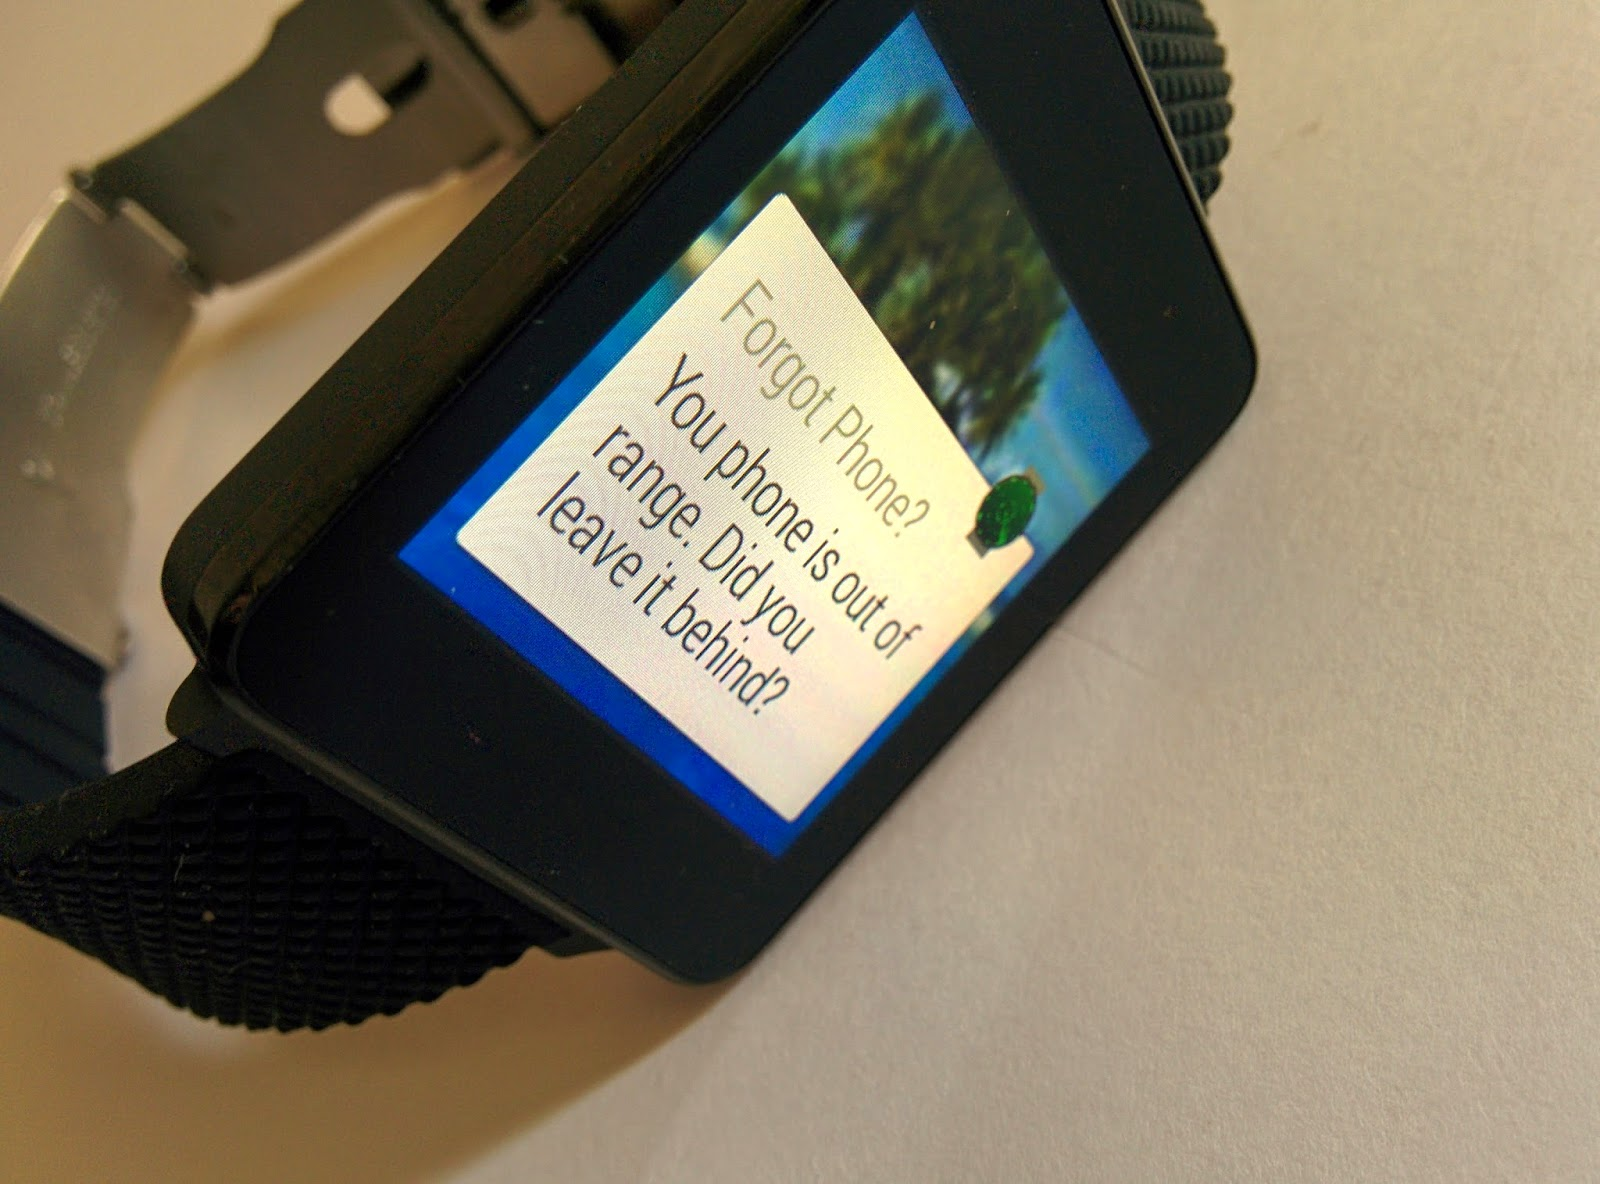 beyond the motor android wear fined my